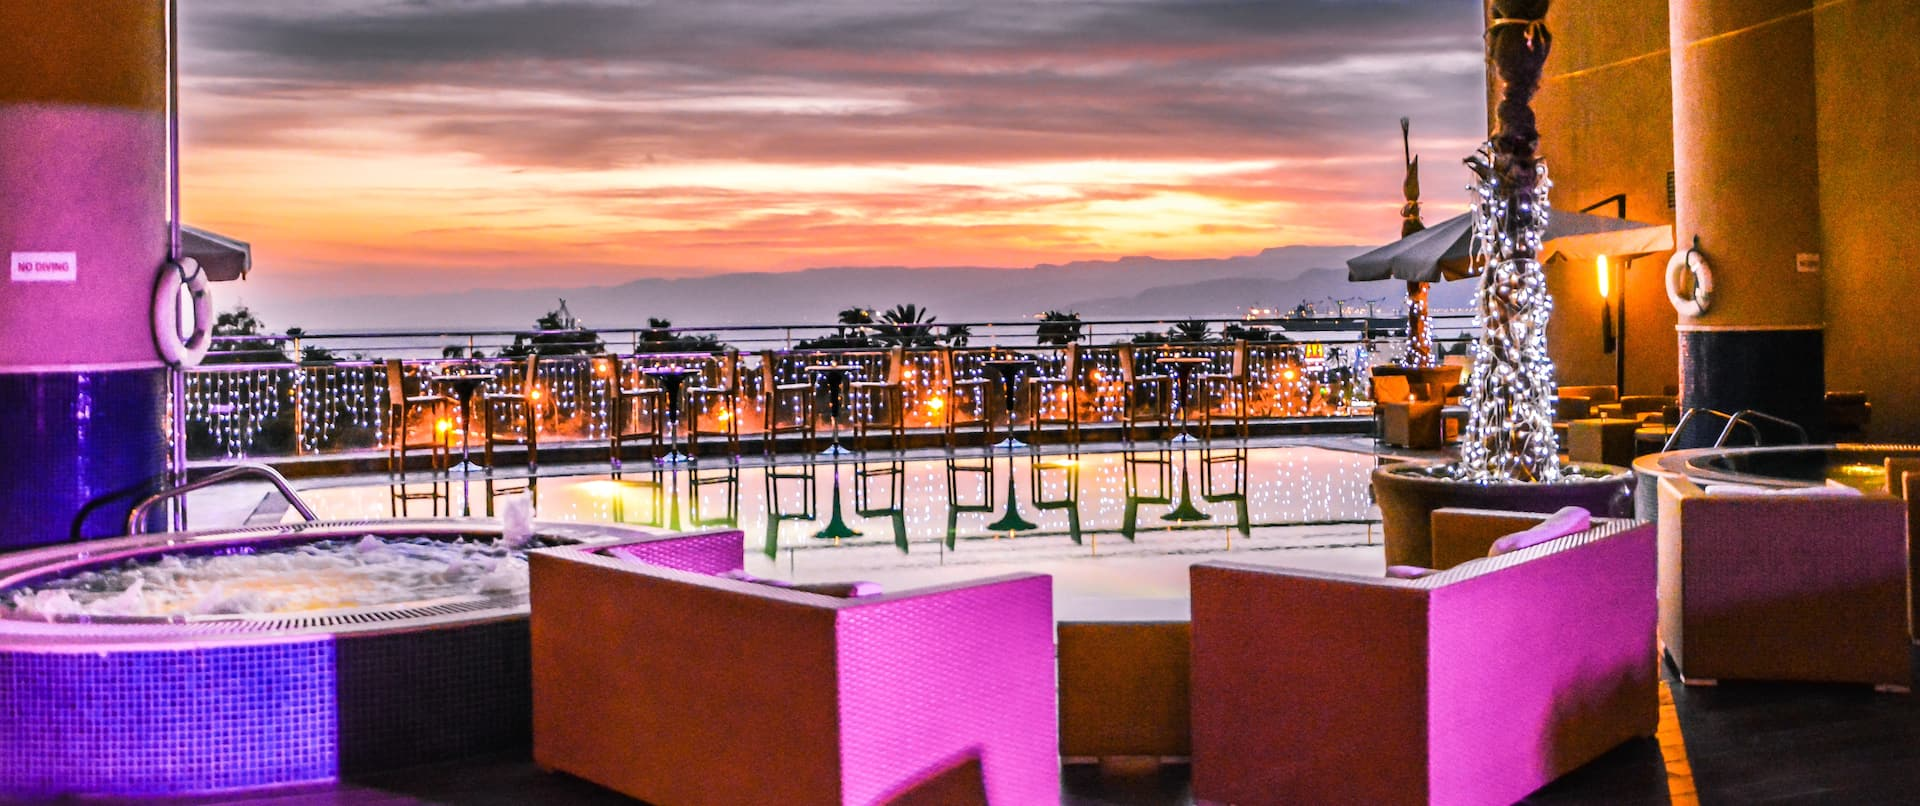 Infinity Chill Out Area With Lounge Seating by Hot Tub Illuminated in Pink Lights at Sunset